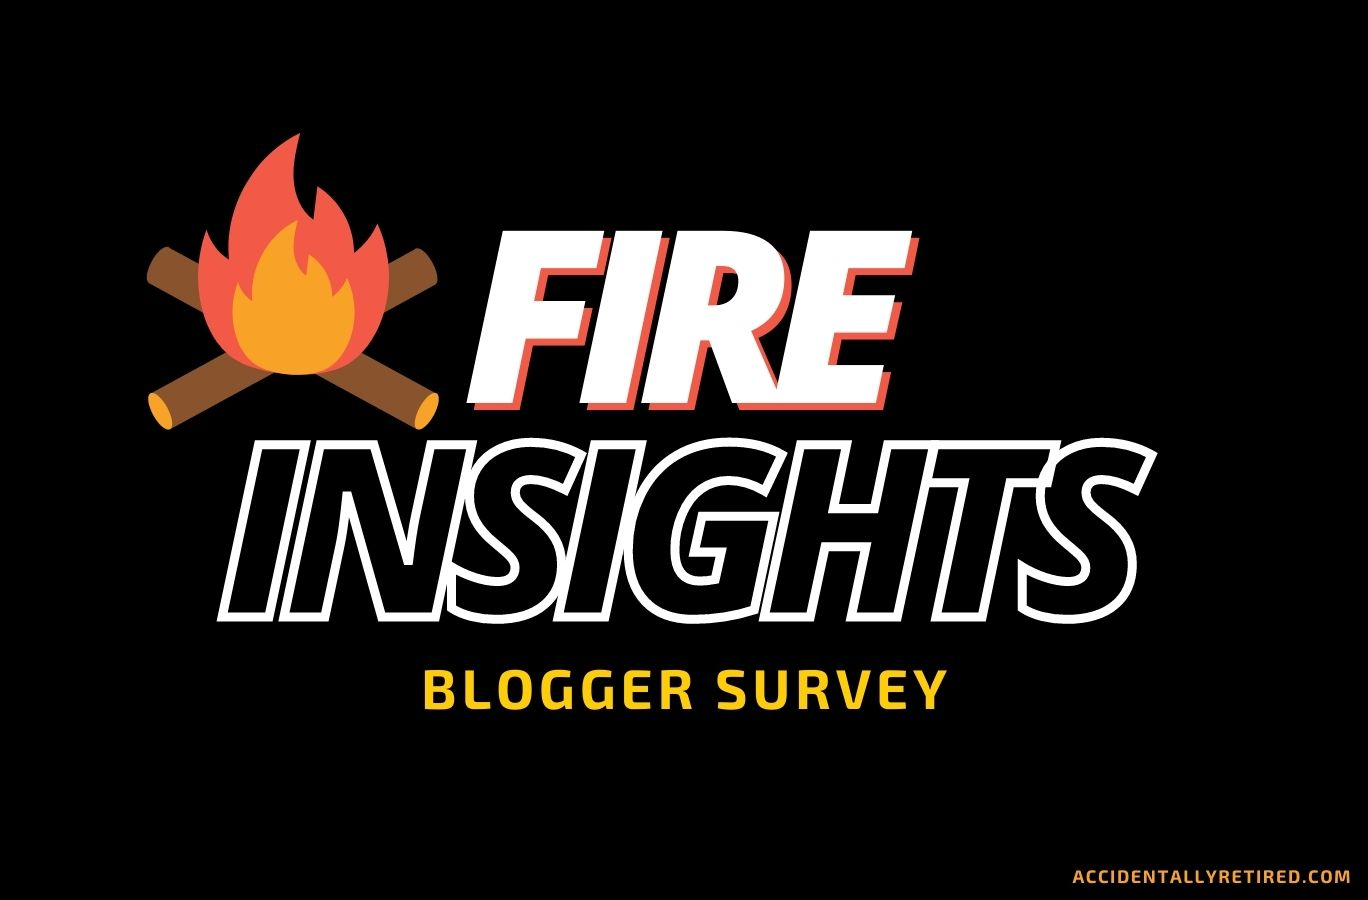 FIRE Insights Blogger Survey Featured Image